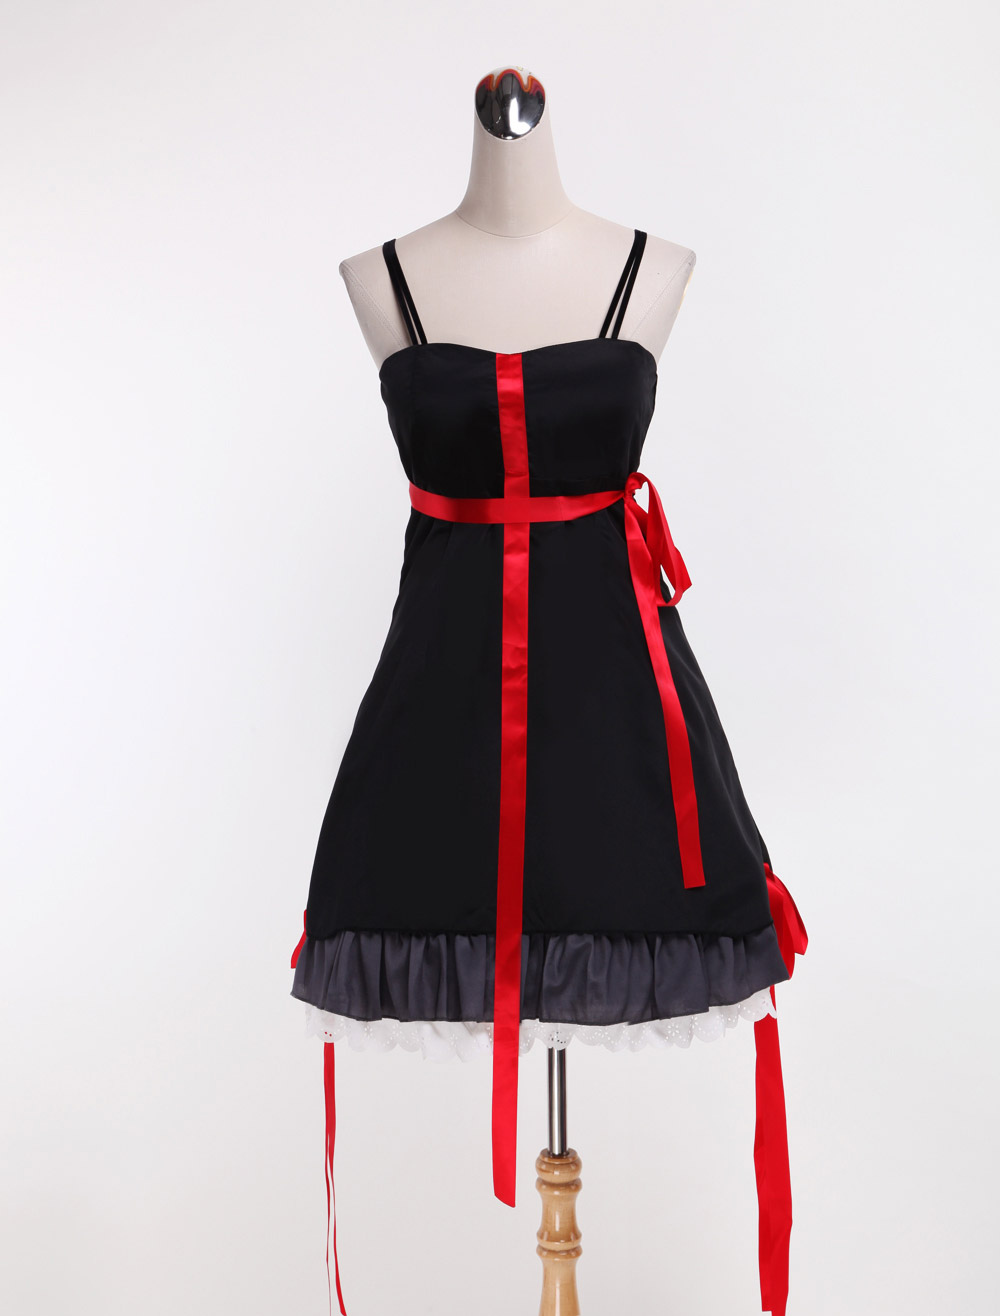 Guilty Crown Yuzuriha Inori Halloween Cosplay Costume Little Black Dress Halloween